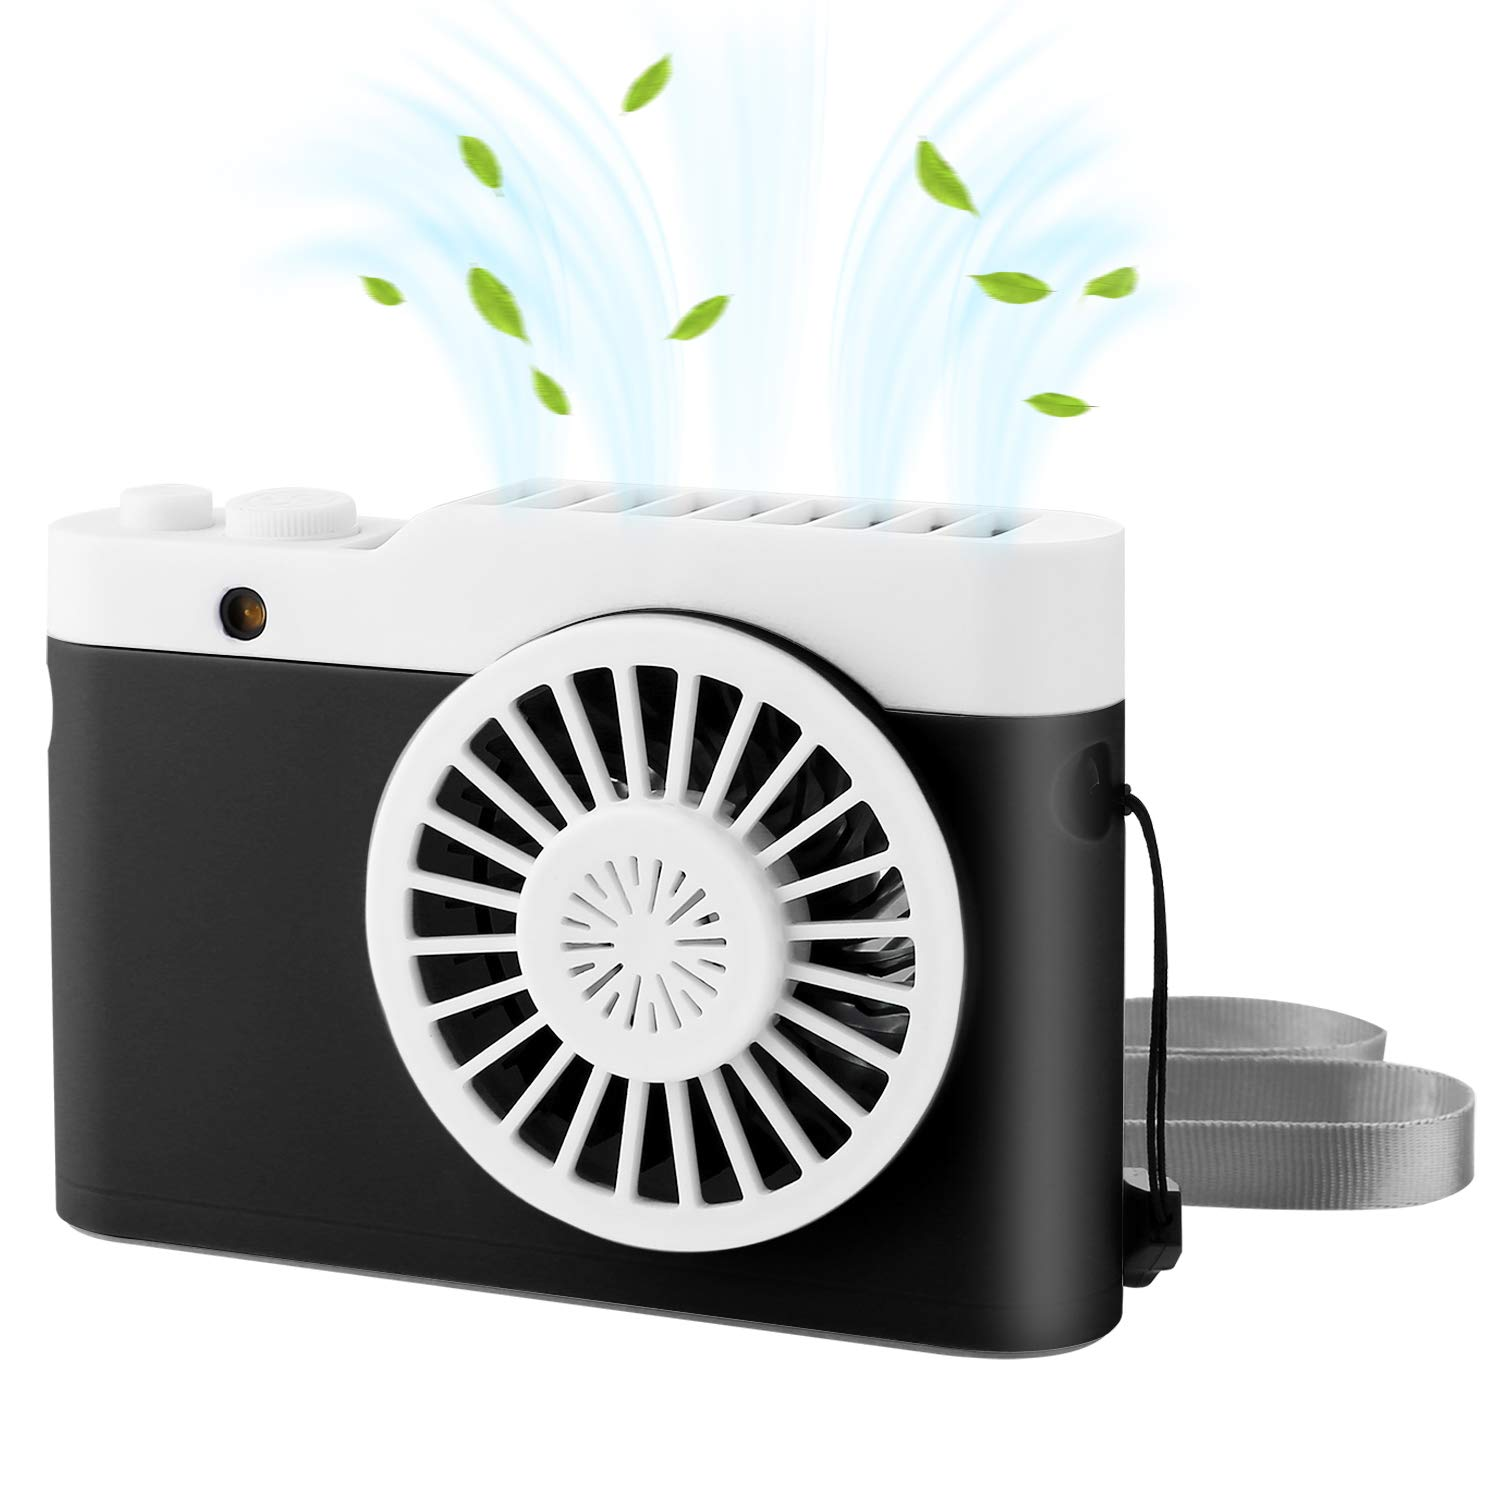 Yoloho Portable Necklace Fan, Mini Handheld Fan USB Rechargeable Battery Operated Fan, Hands Free Face Fan with 3 Adjustable Speeds, 9 Hours Working Time Personal Fan for Home Office Outdoors Travel